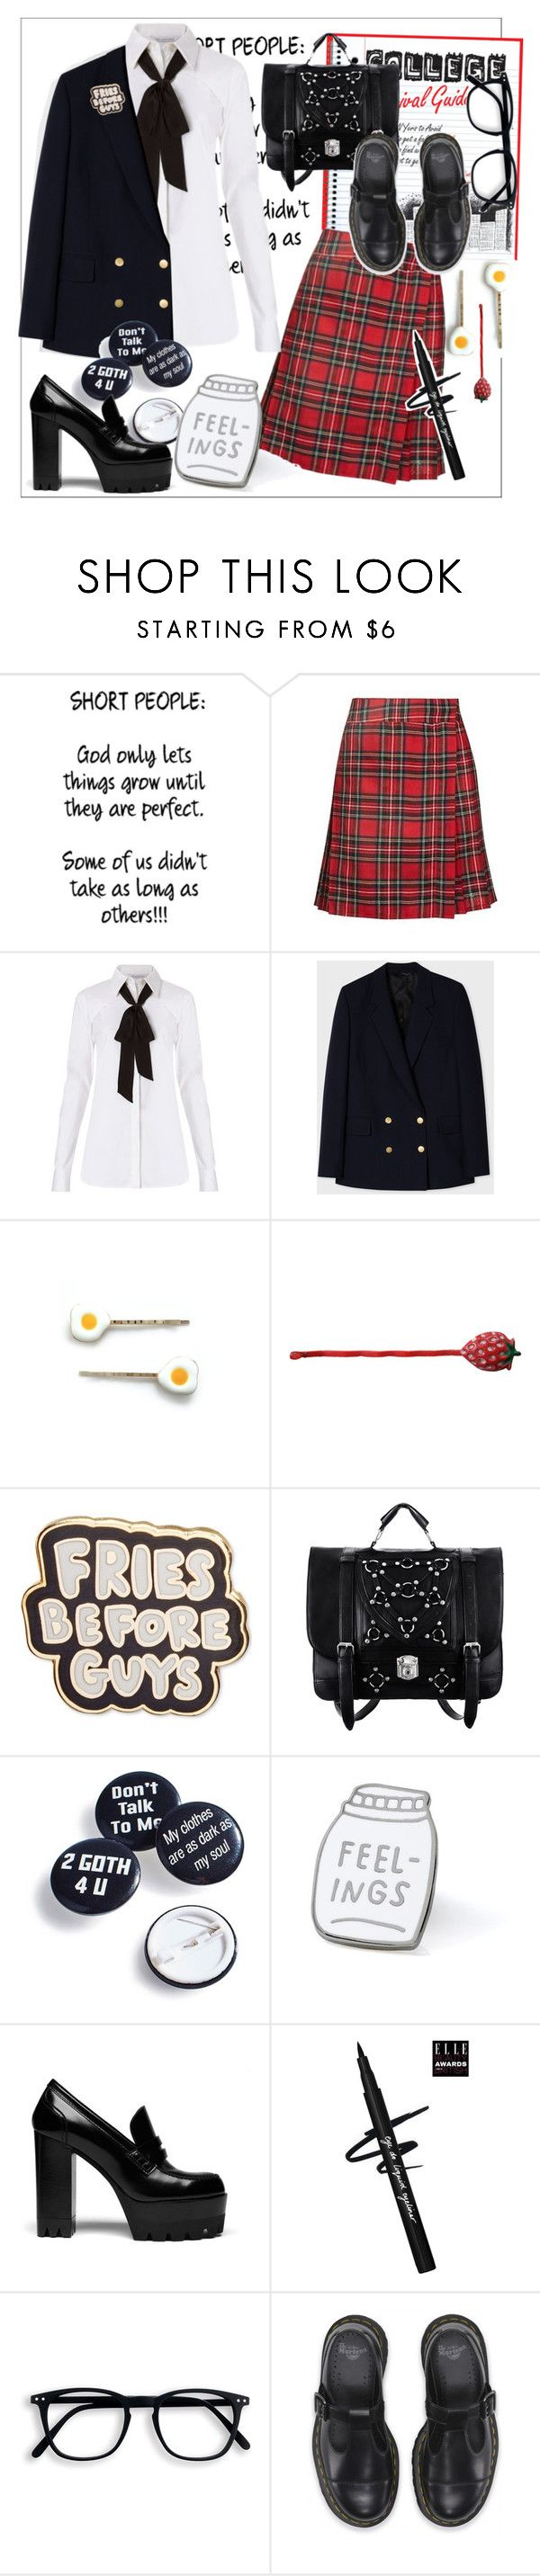 """Uniform style"" by tiraboschi-b ❤ liked on Polyvore featuring Guide London, Motel, Diane Von Furstenberg, Paul Smith, Crown and Glory, ban.do, Witch Worldwide and Mulberry"